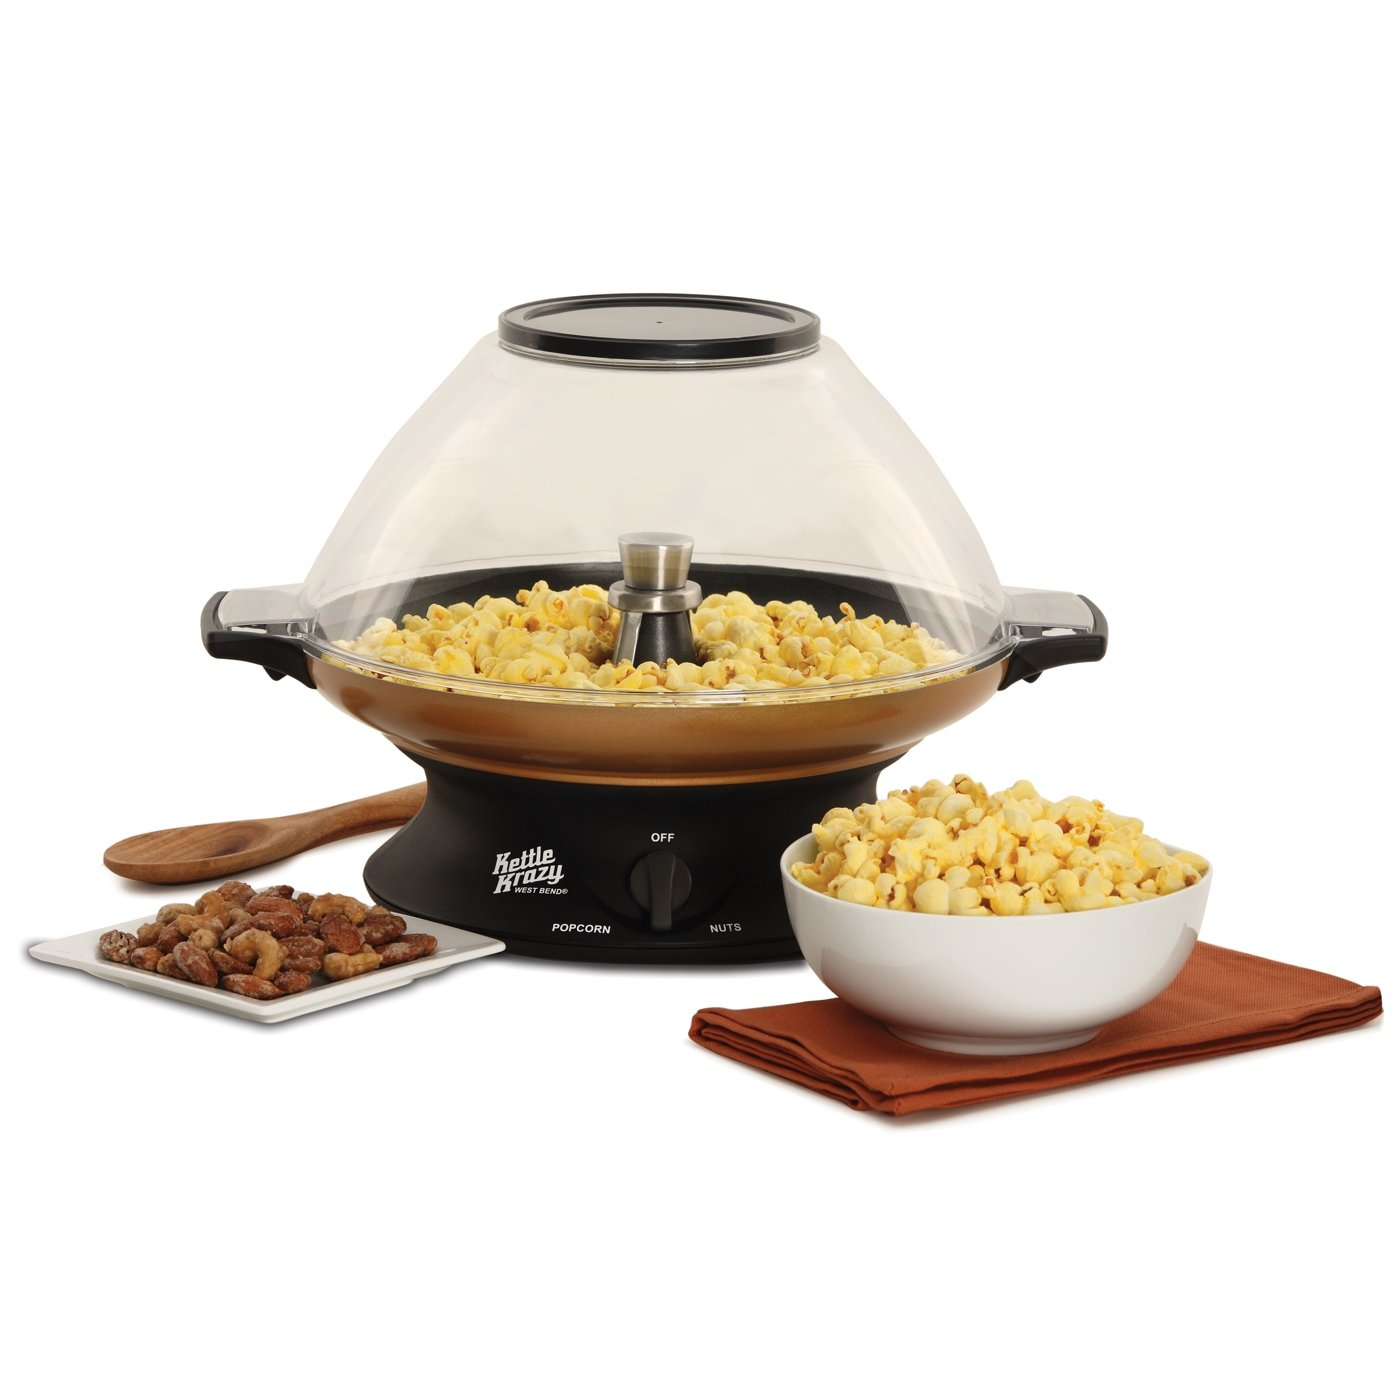 West Bend 82386 Kettle Krazy Popcorn Popper and Nut Roaster (Discontinued by Manufacturer)